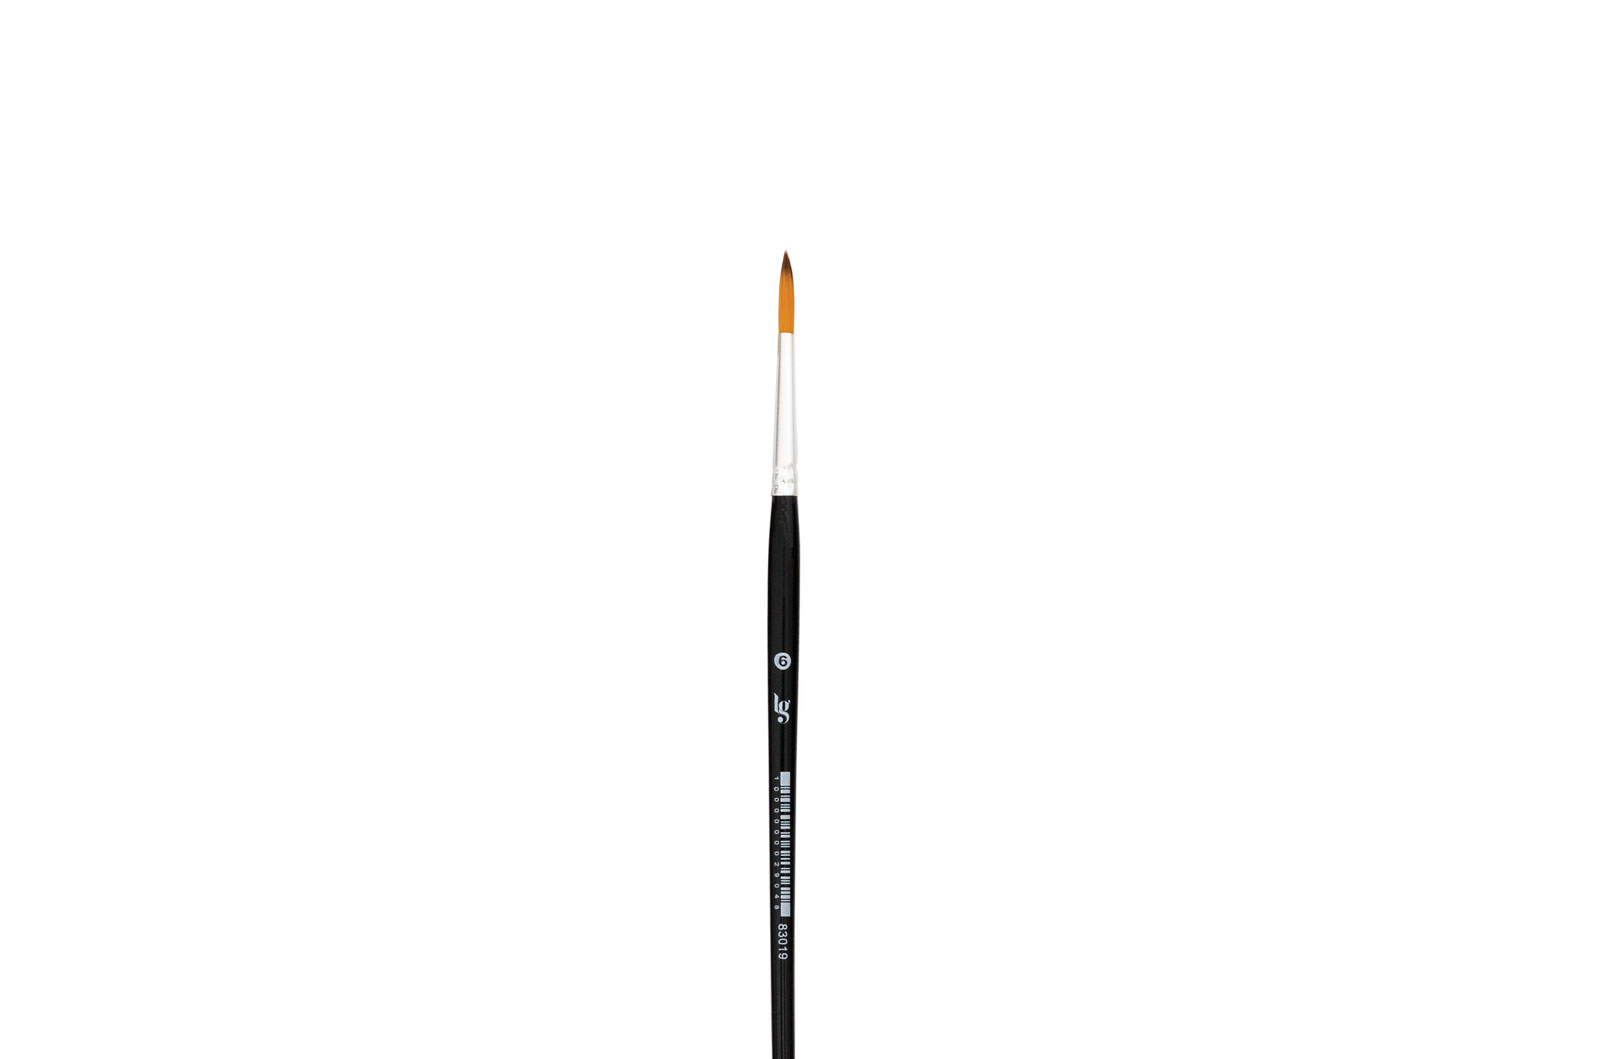 BRUSH LG Nº6 SYNTHETIC ROUND /12